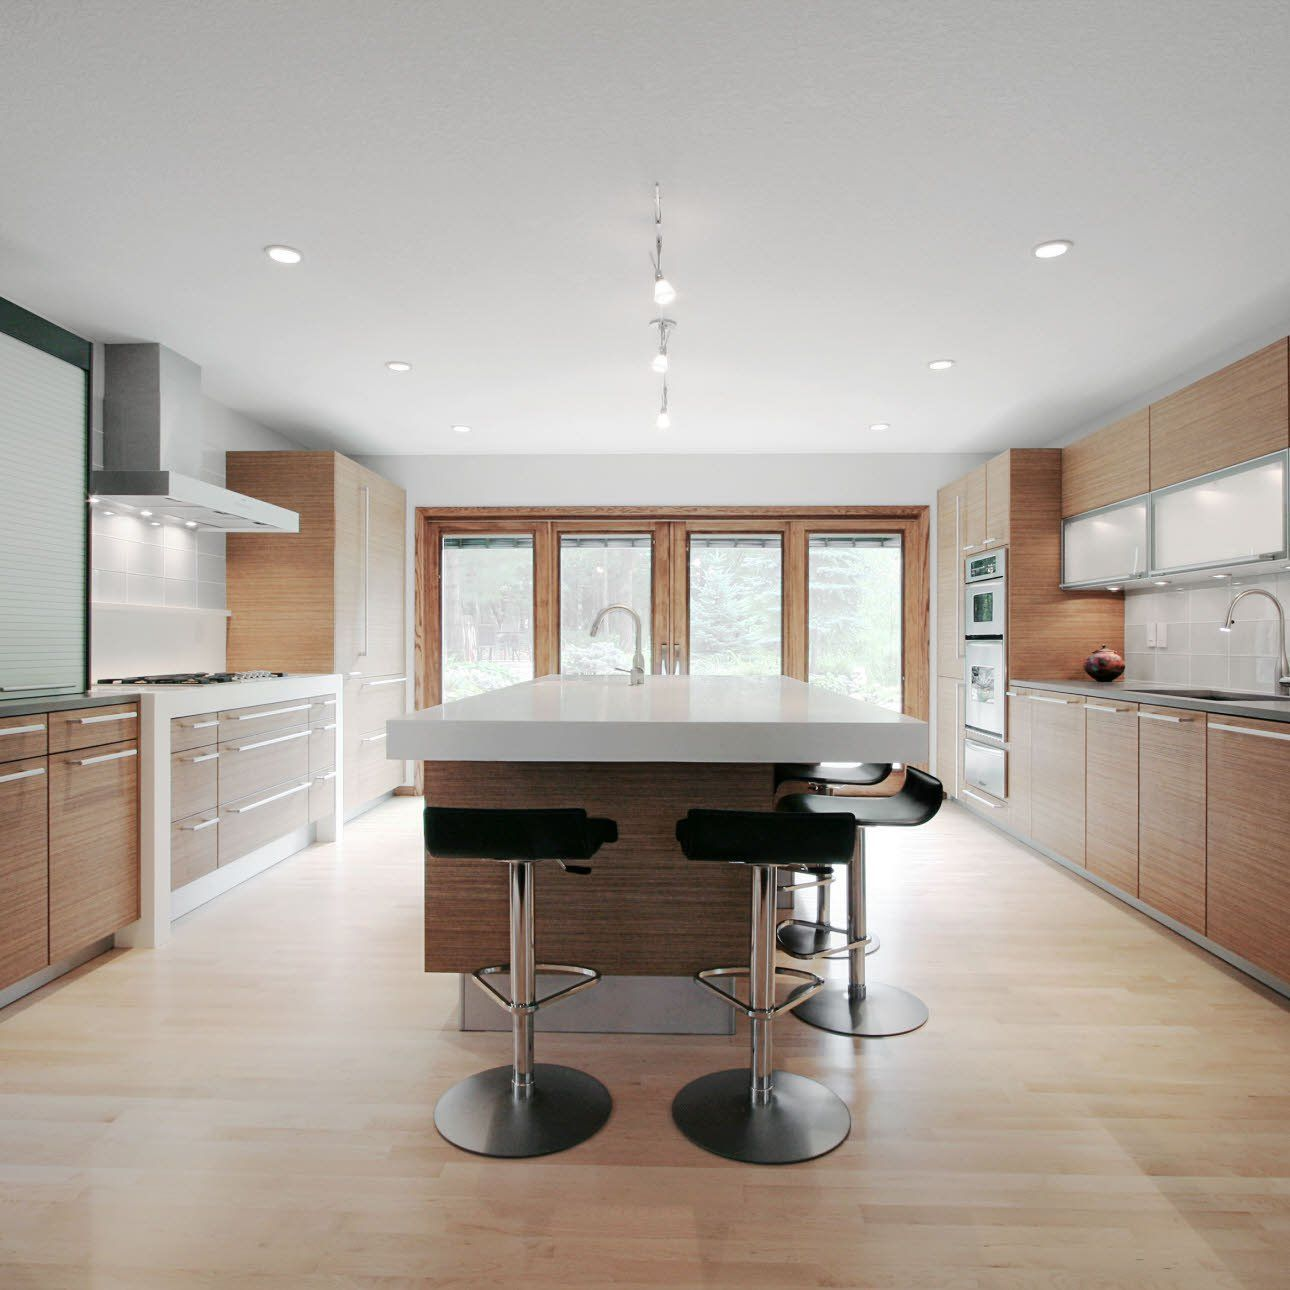 Large window kitchen designs  panoramic windows bring views of the surrounding woodland into this